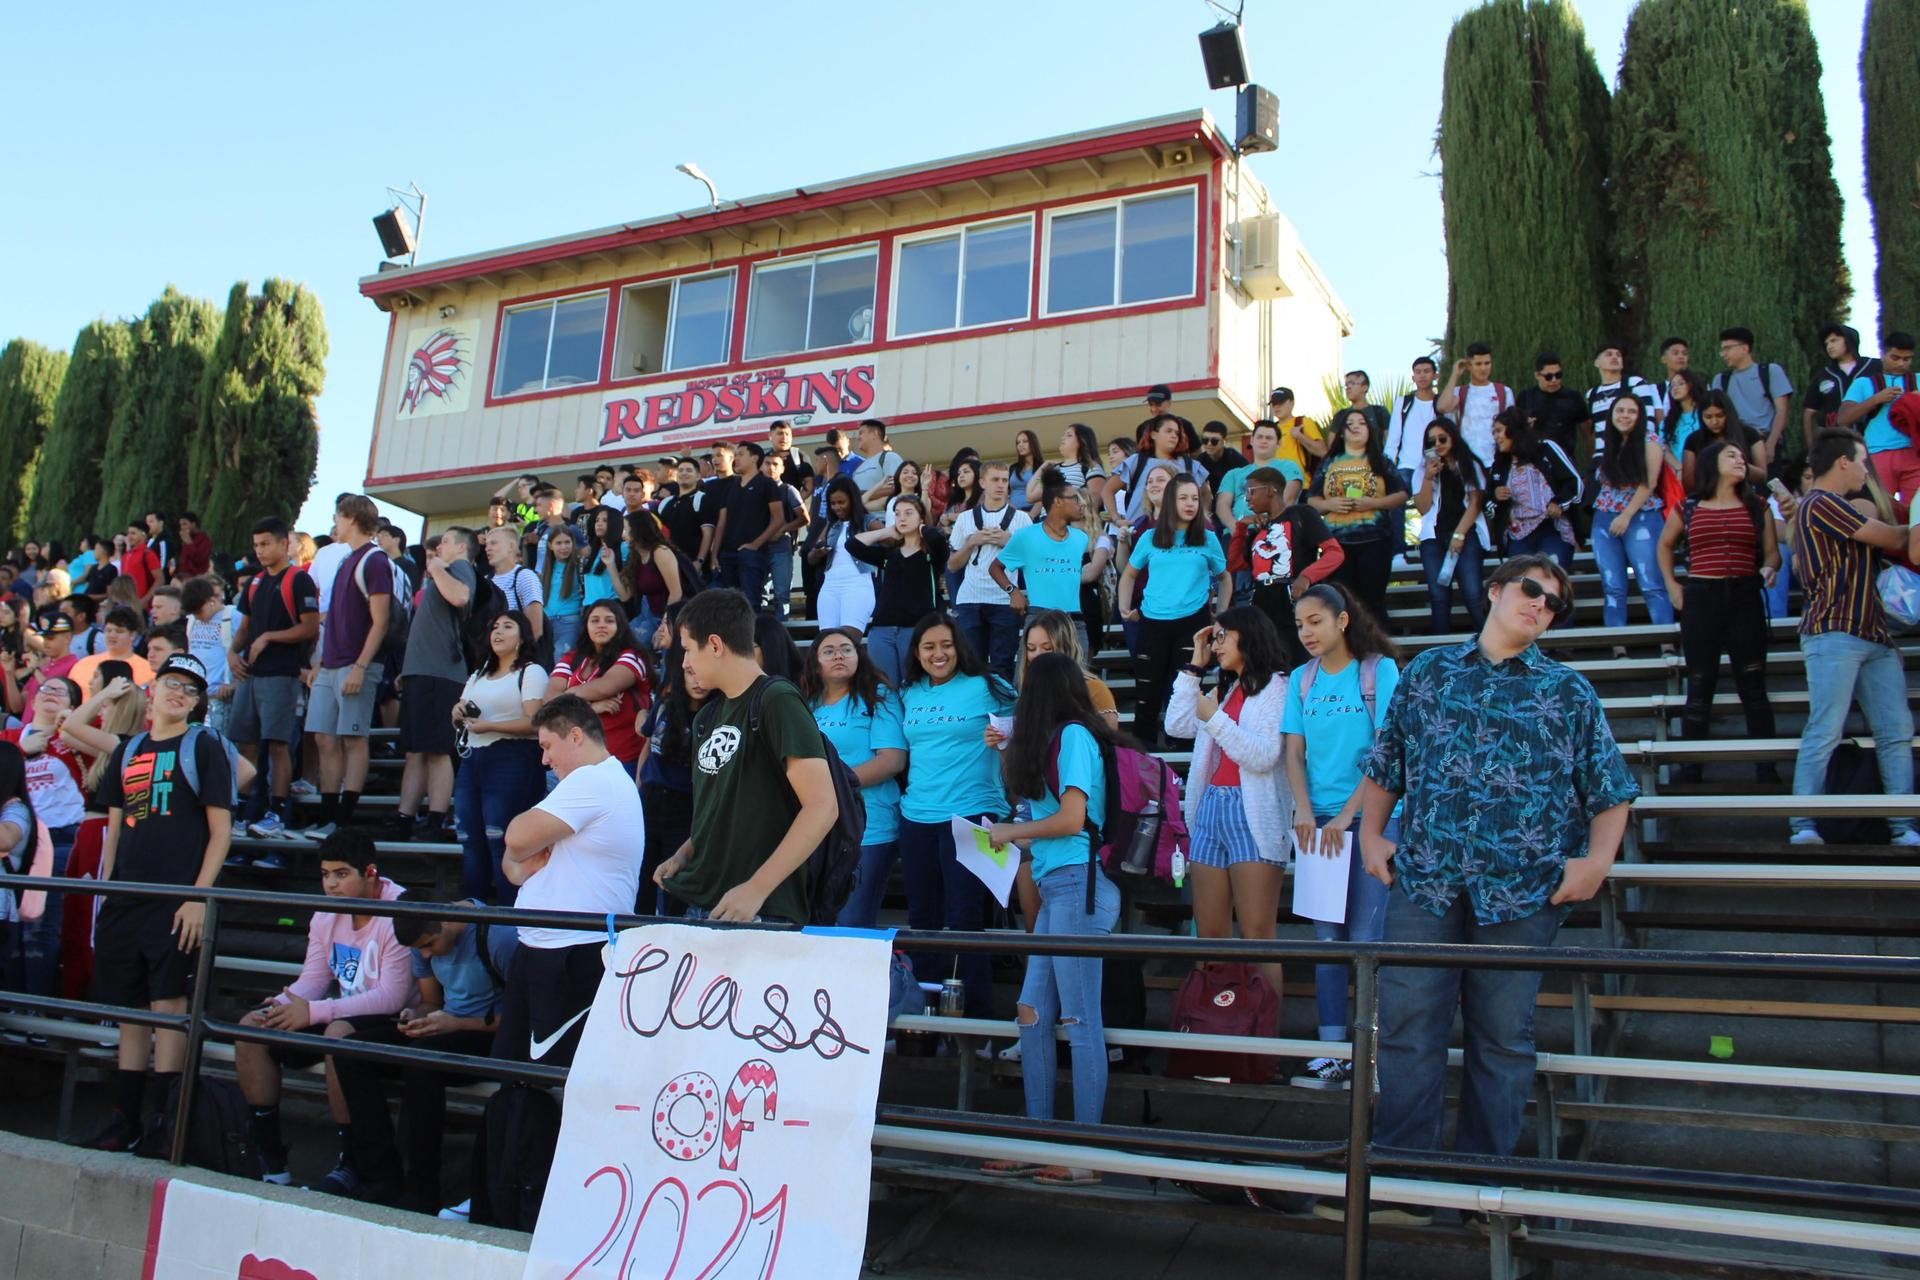 cuhs students in the stands